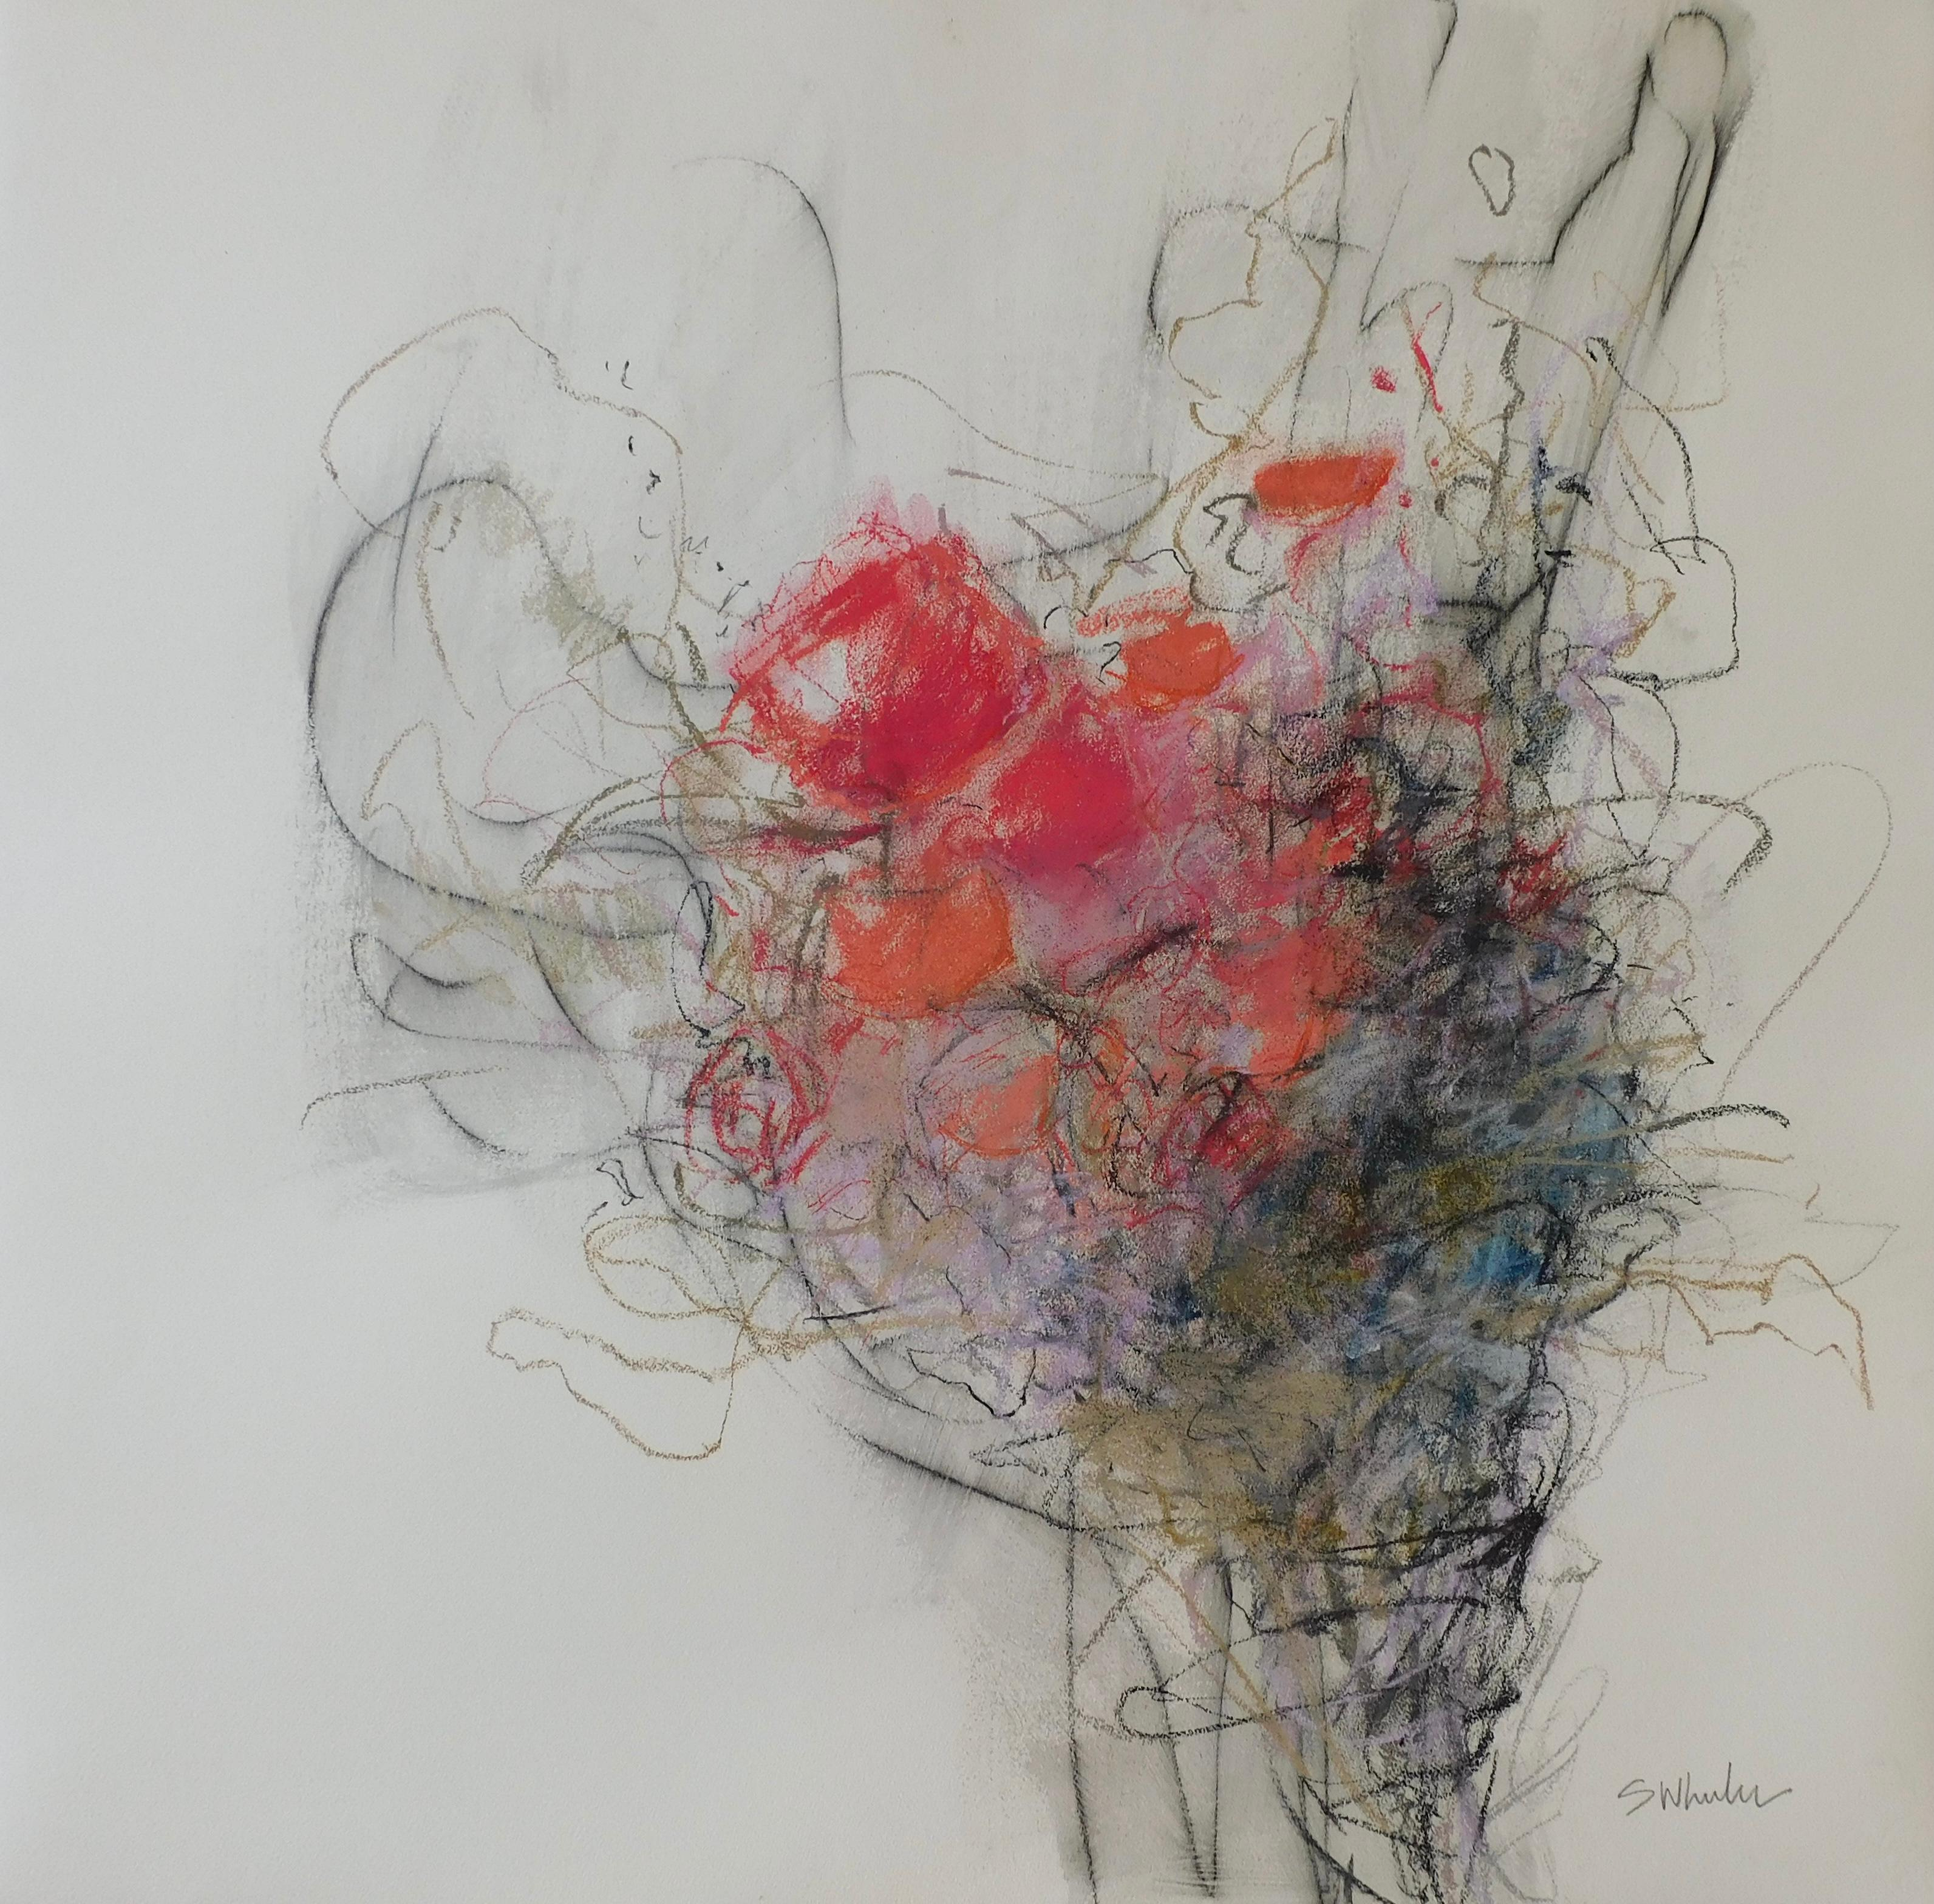 Abstract Floral Mixed Media by S. Wheeler